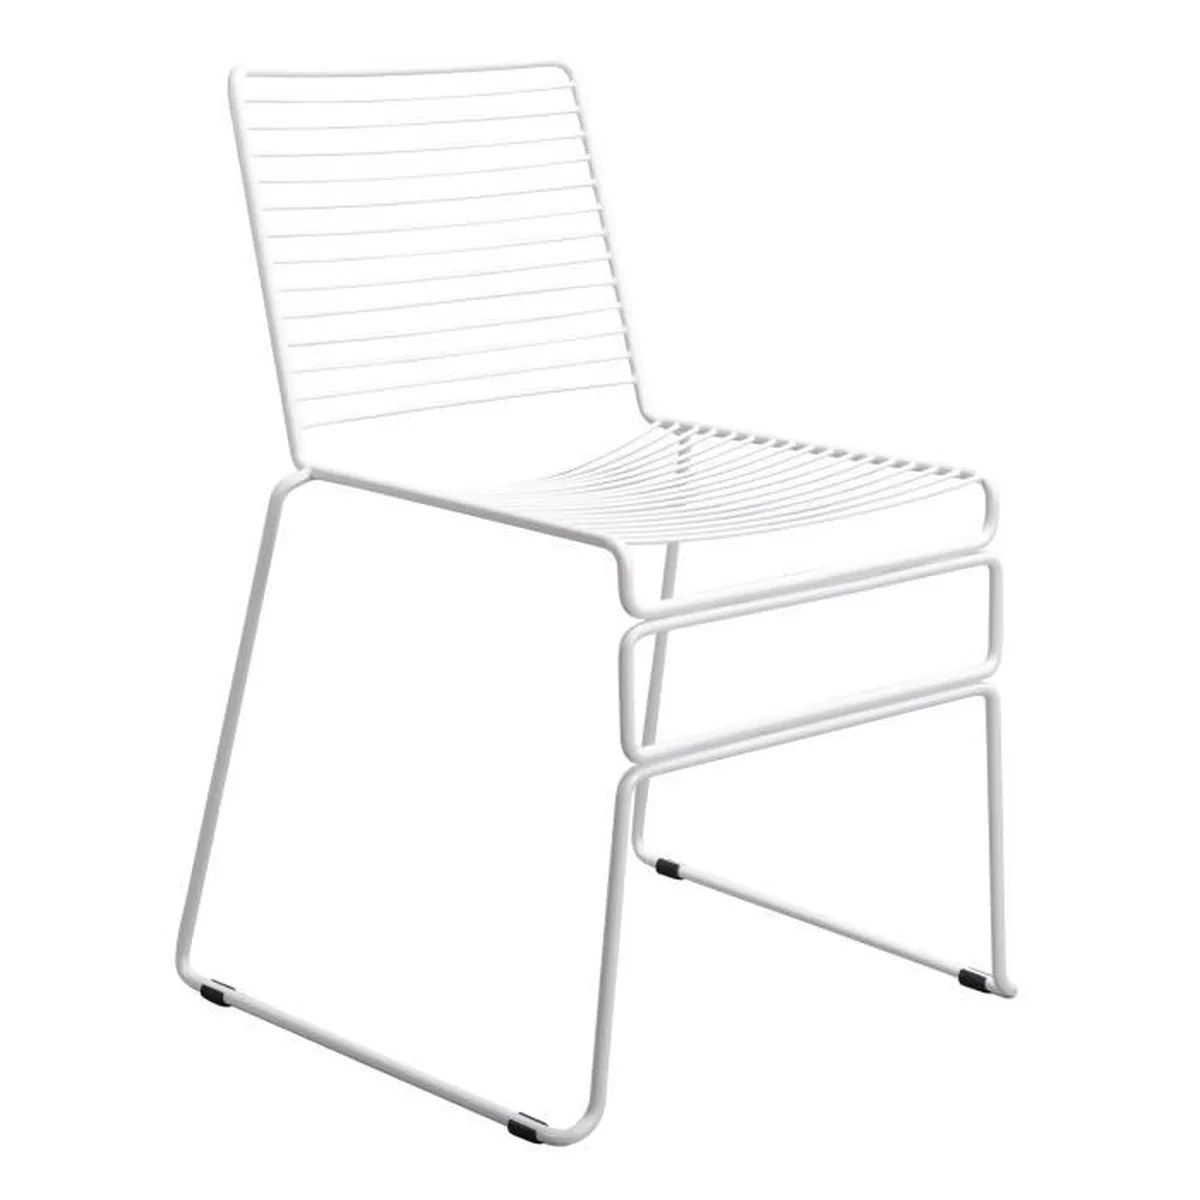 Chaise Blanche Cdiscount Gallery Of Cdiscount Chaise Design Concernant Chaise Fil